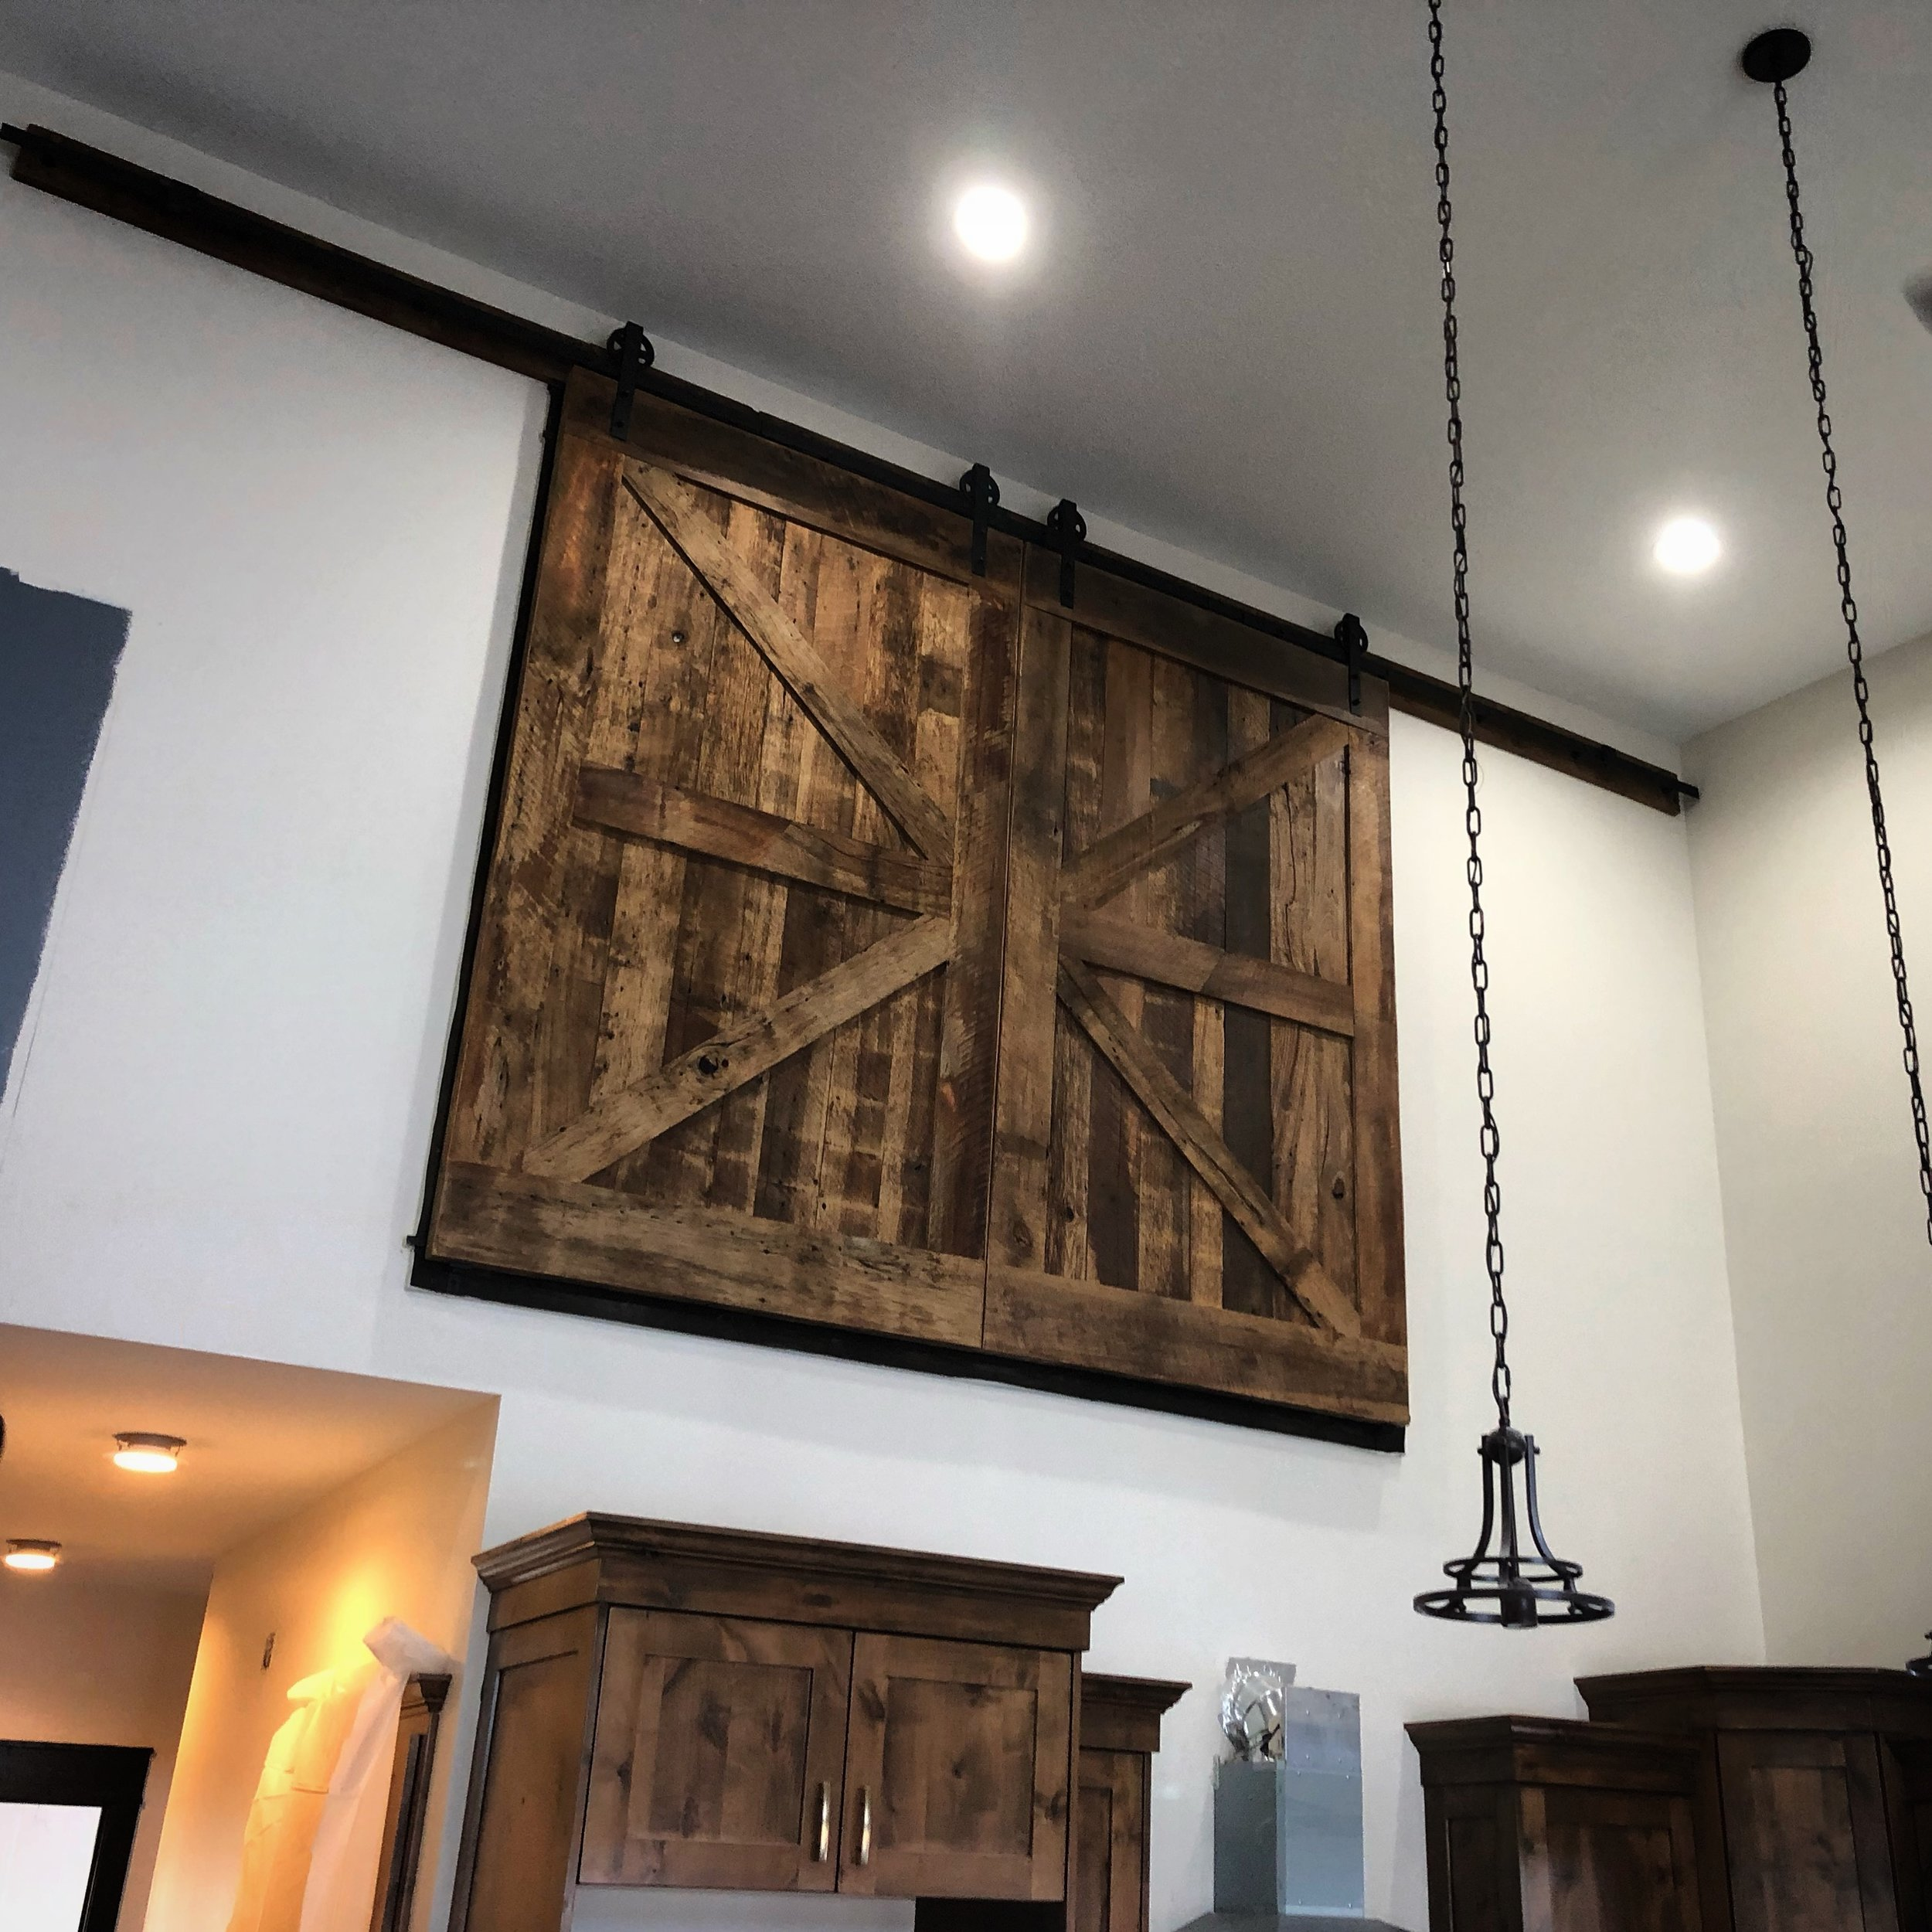 Custom built double barn doors, reclaimed barn wood construction